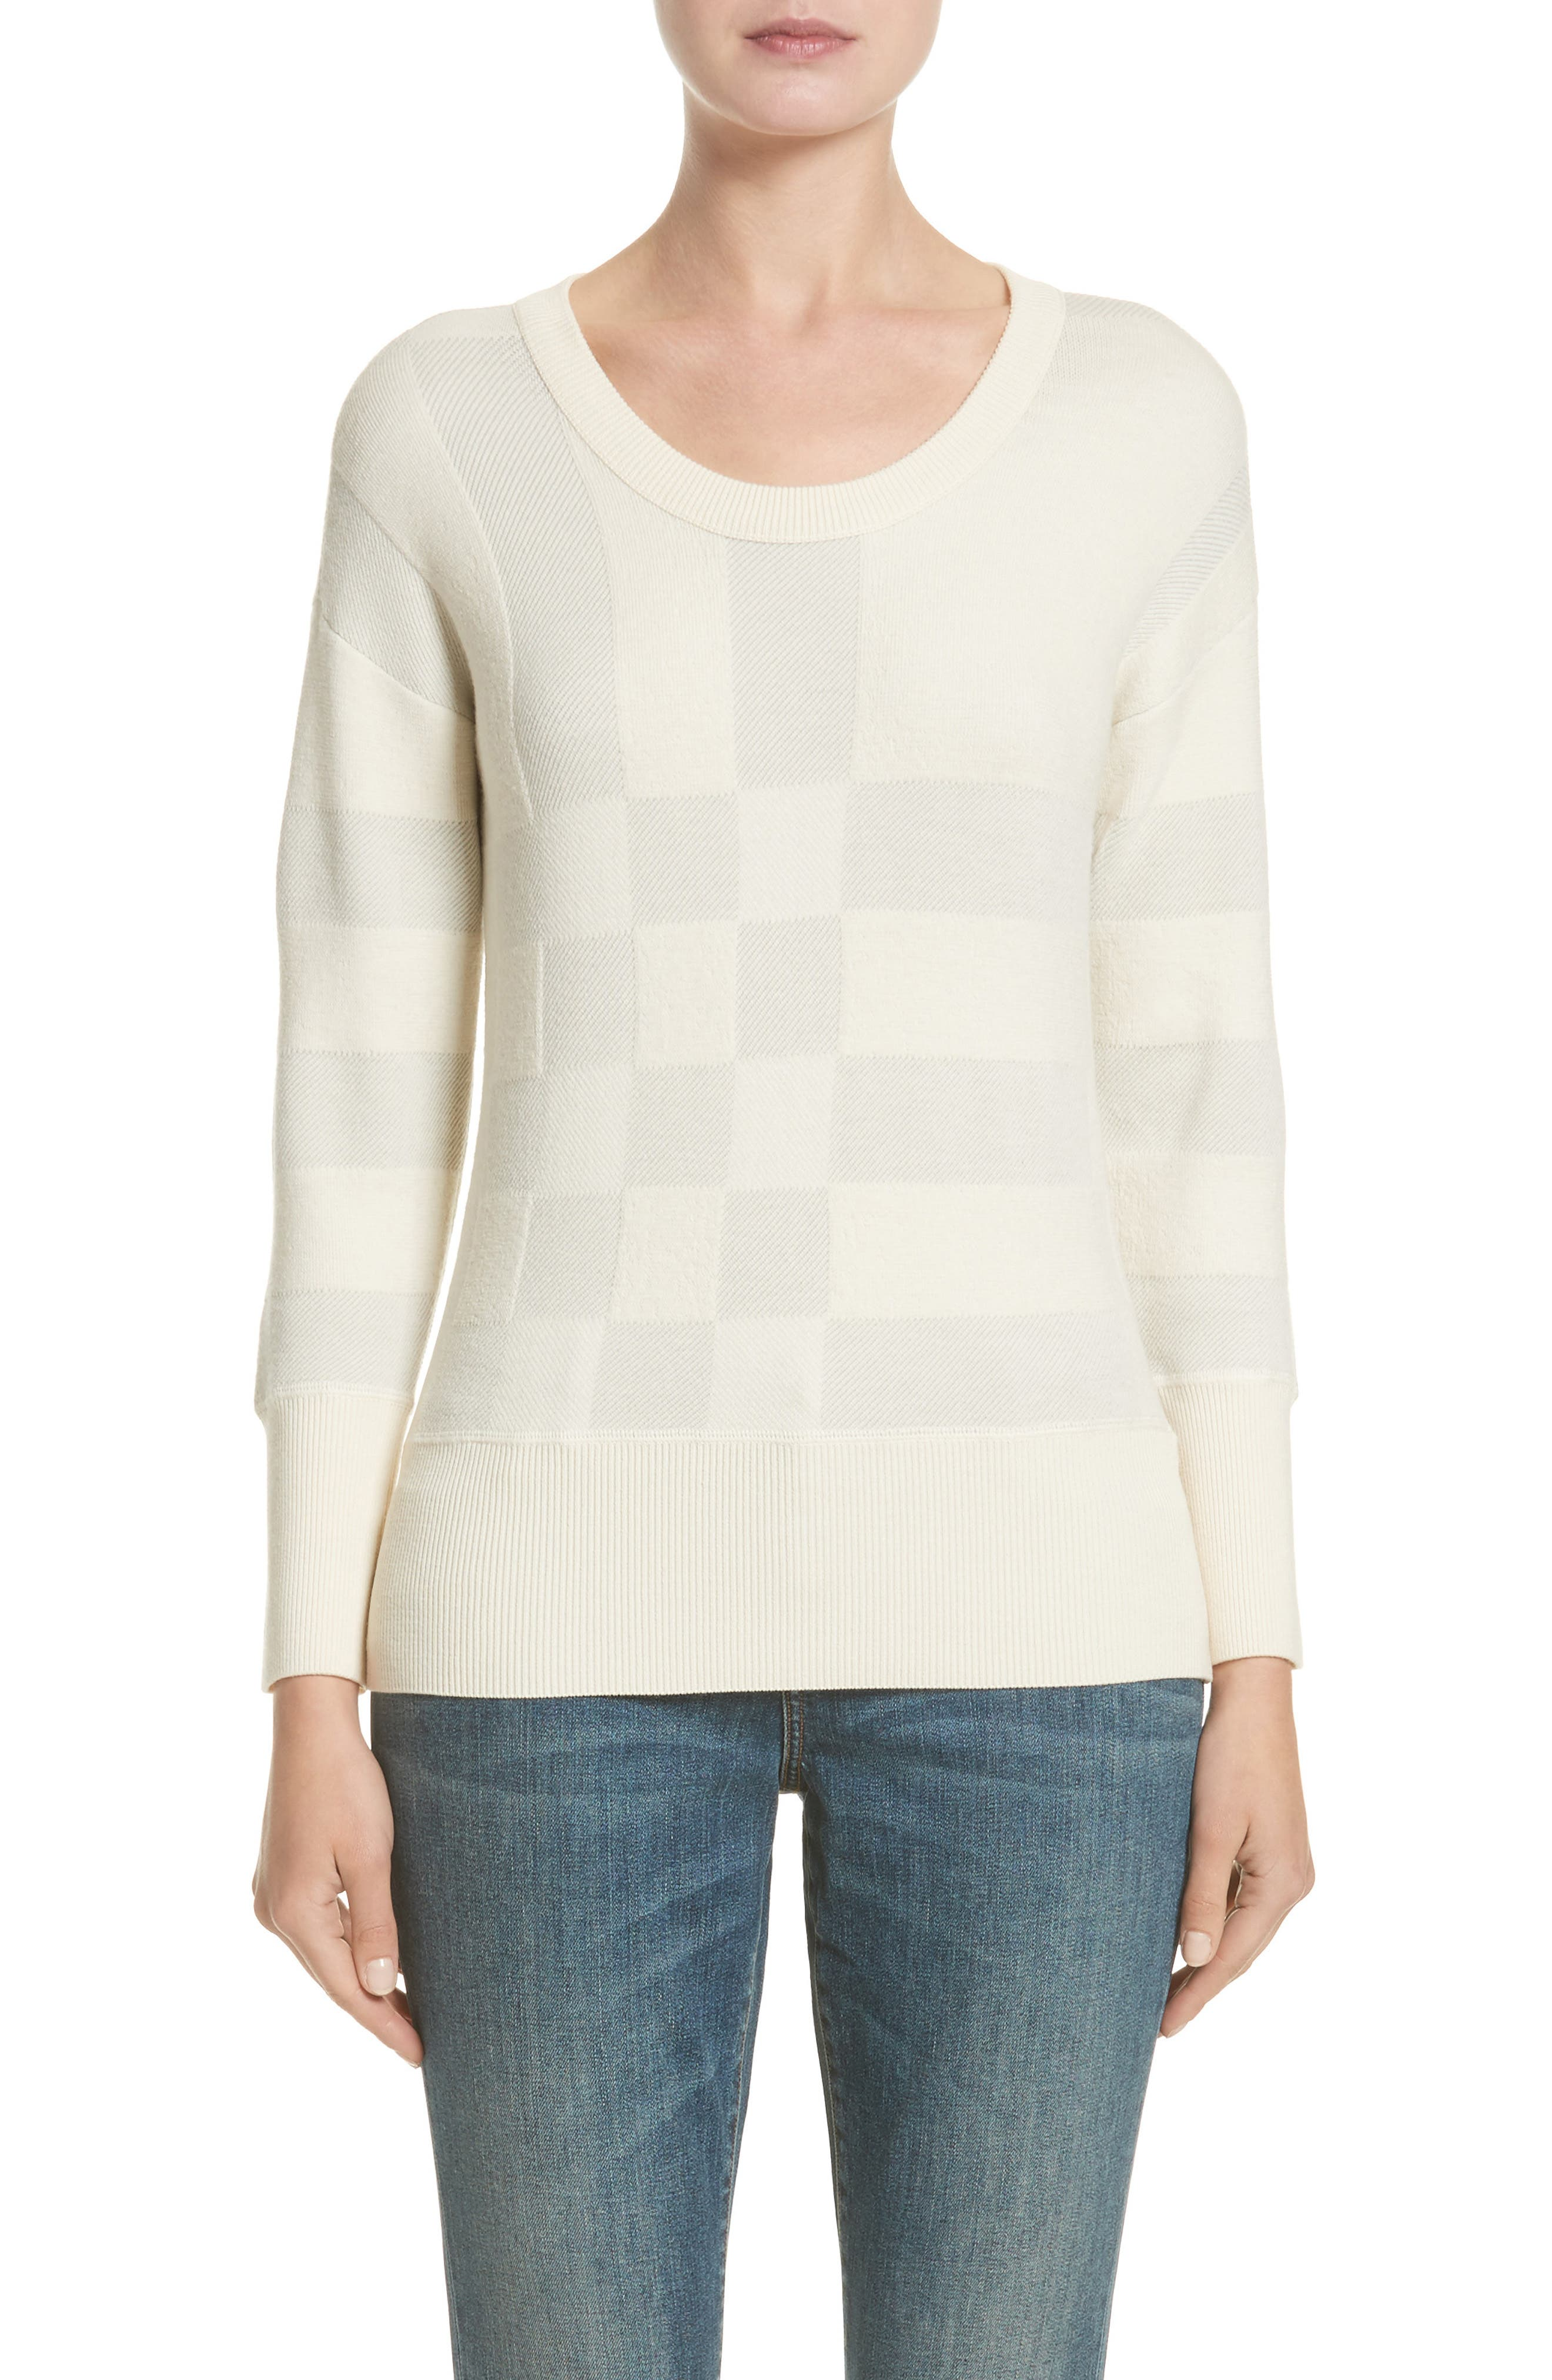 Burberry Check Knit Wool Blend Sweater (Nordstrom Exclusive)